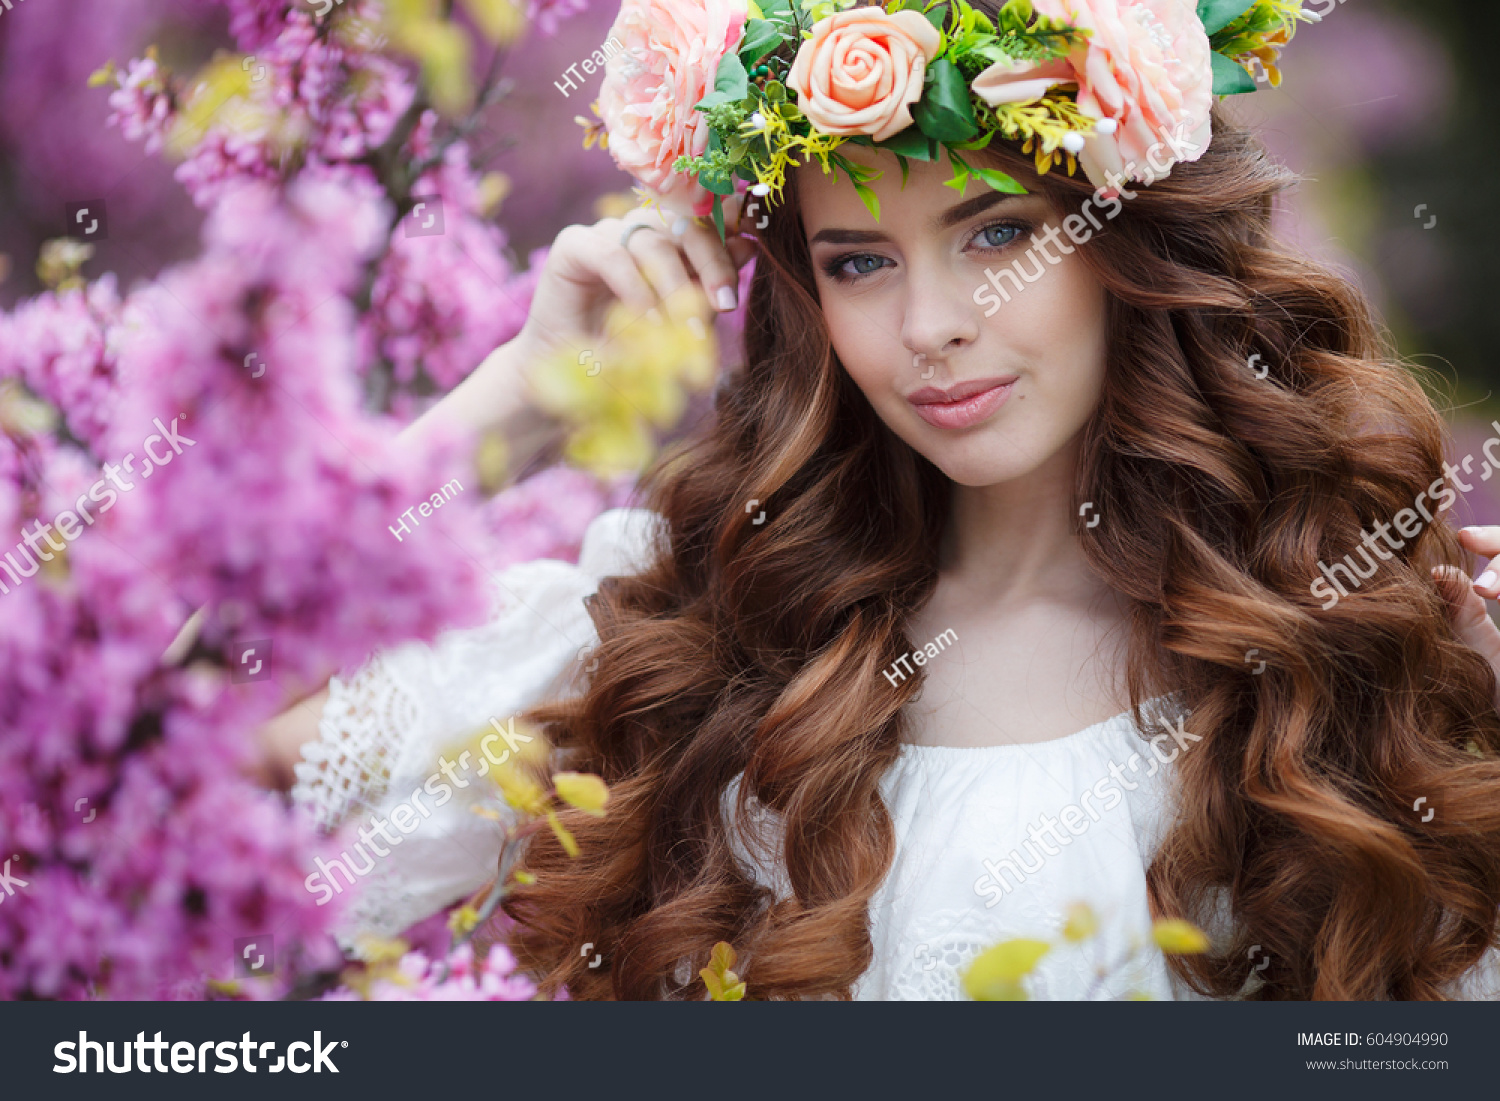 Spring woman flowers beautiful woman flower stock photo safe to use spring woman in flowers beautiful woman with flower wreath portrait of young beautiful woman izmirmasajfo